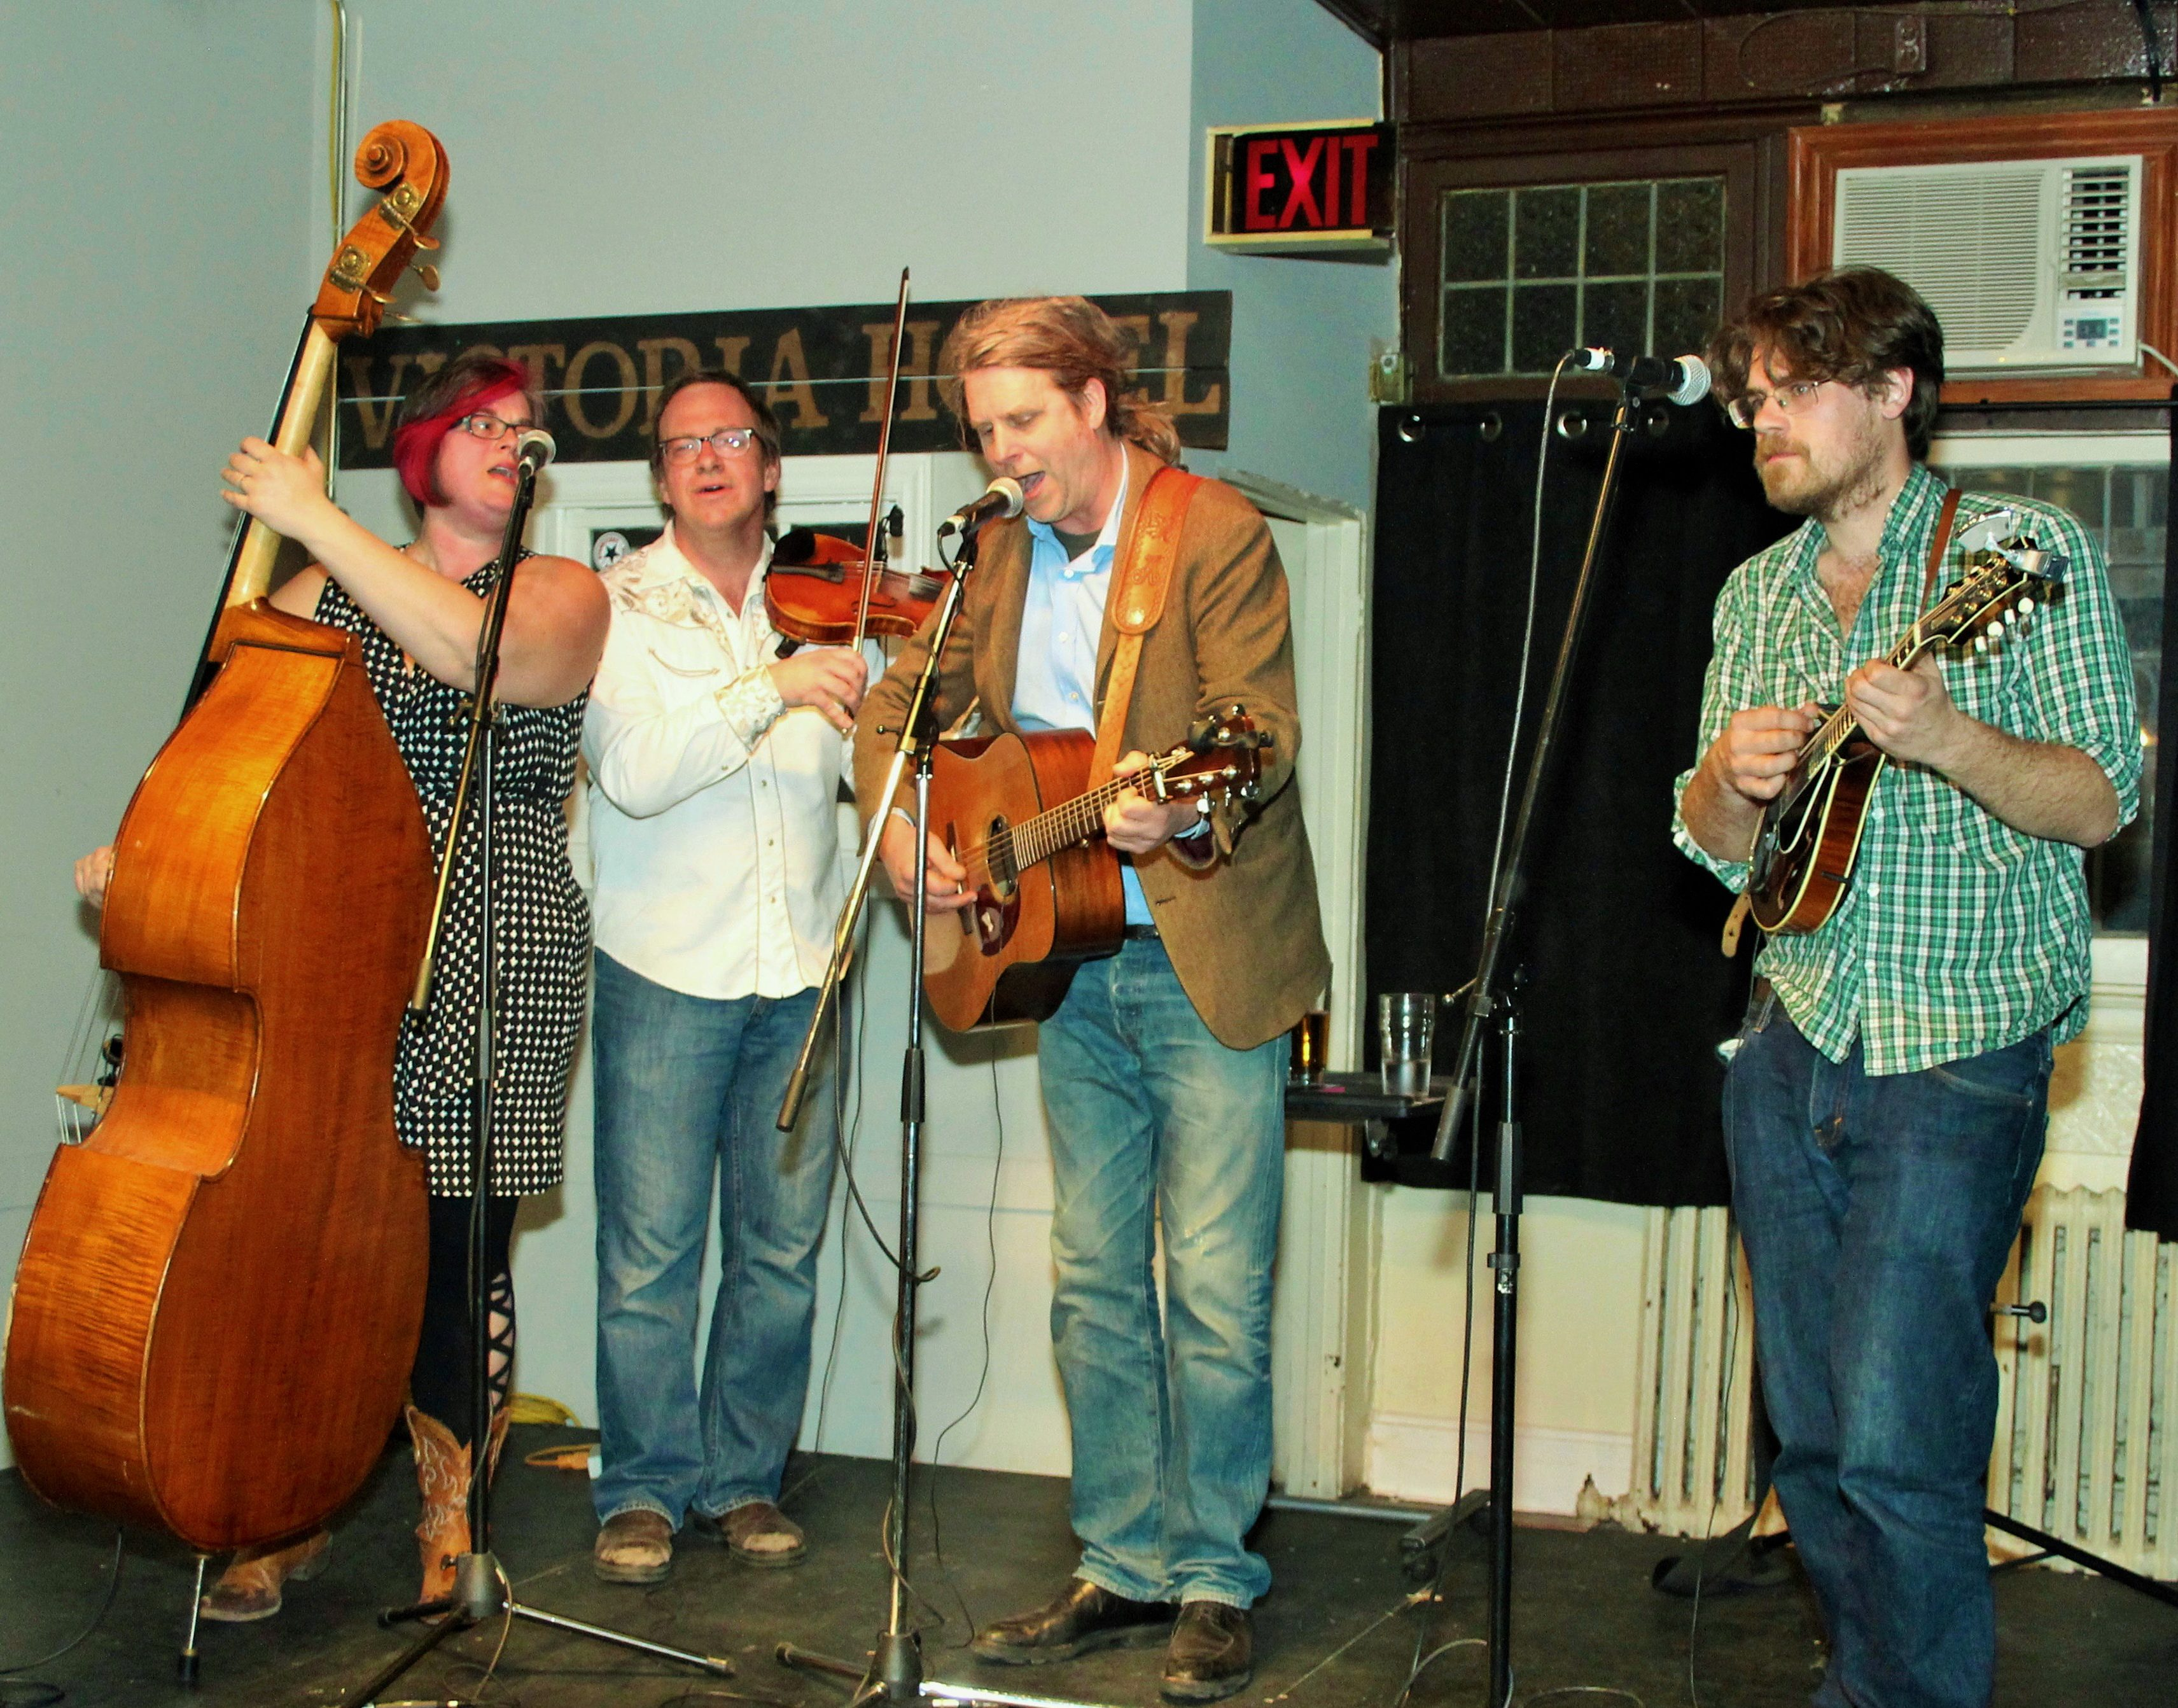 stringband performing